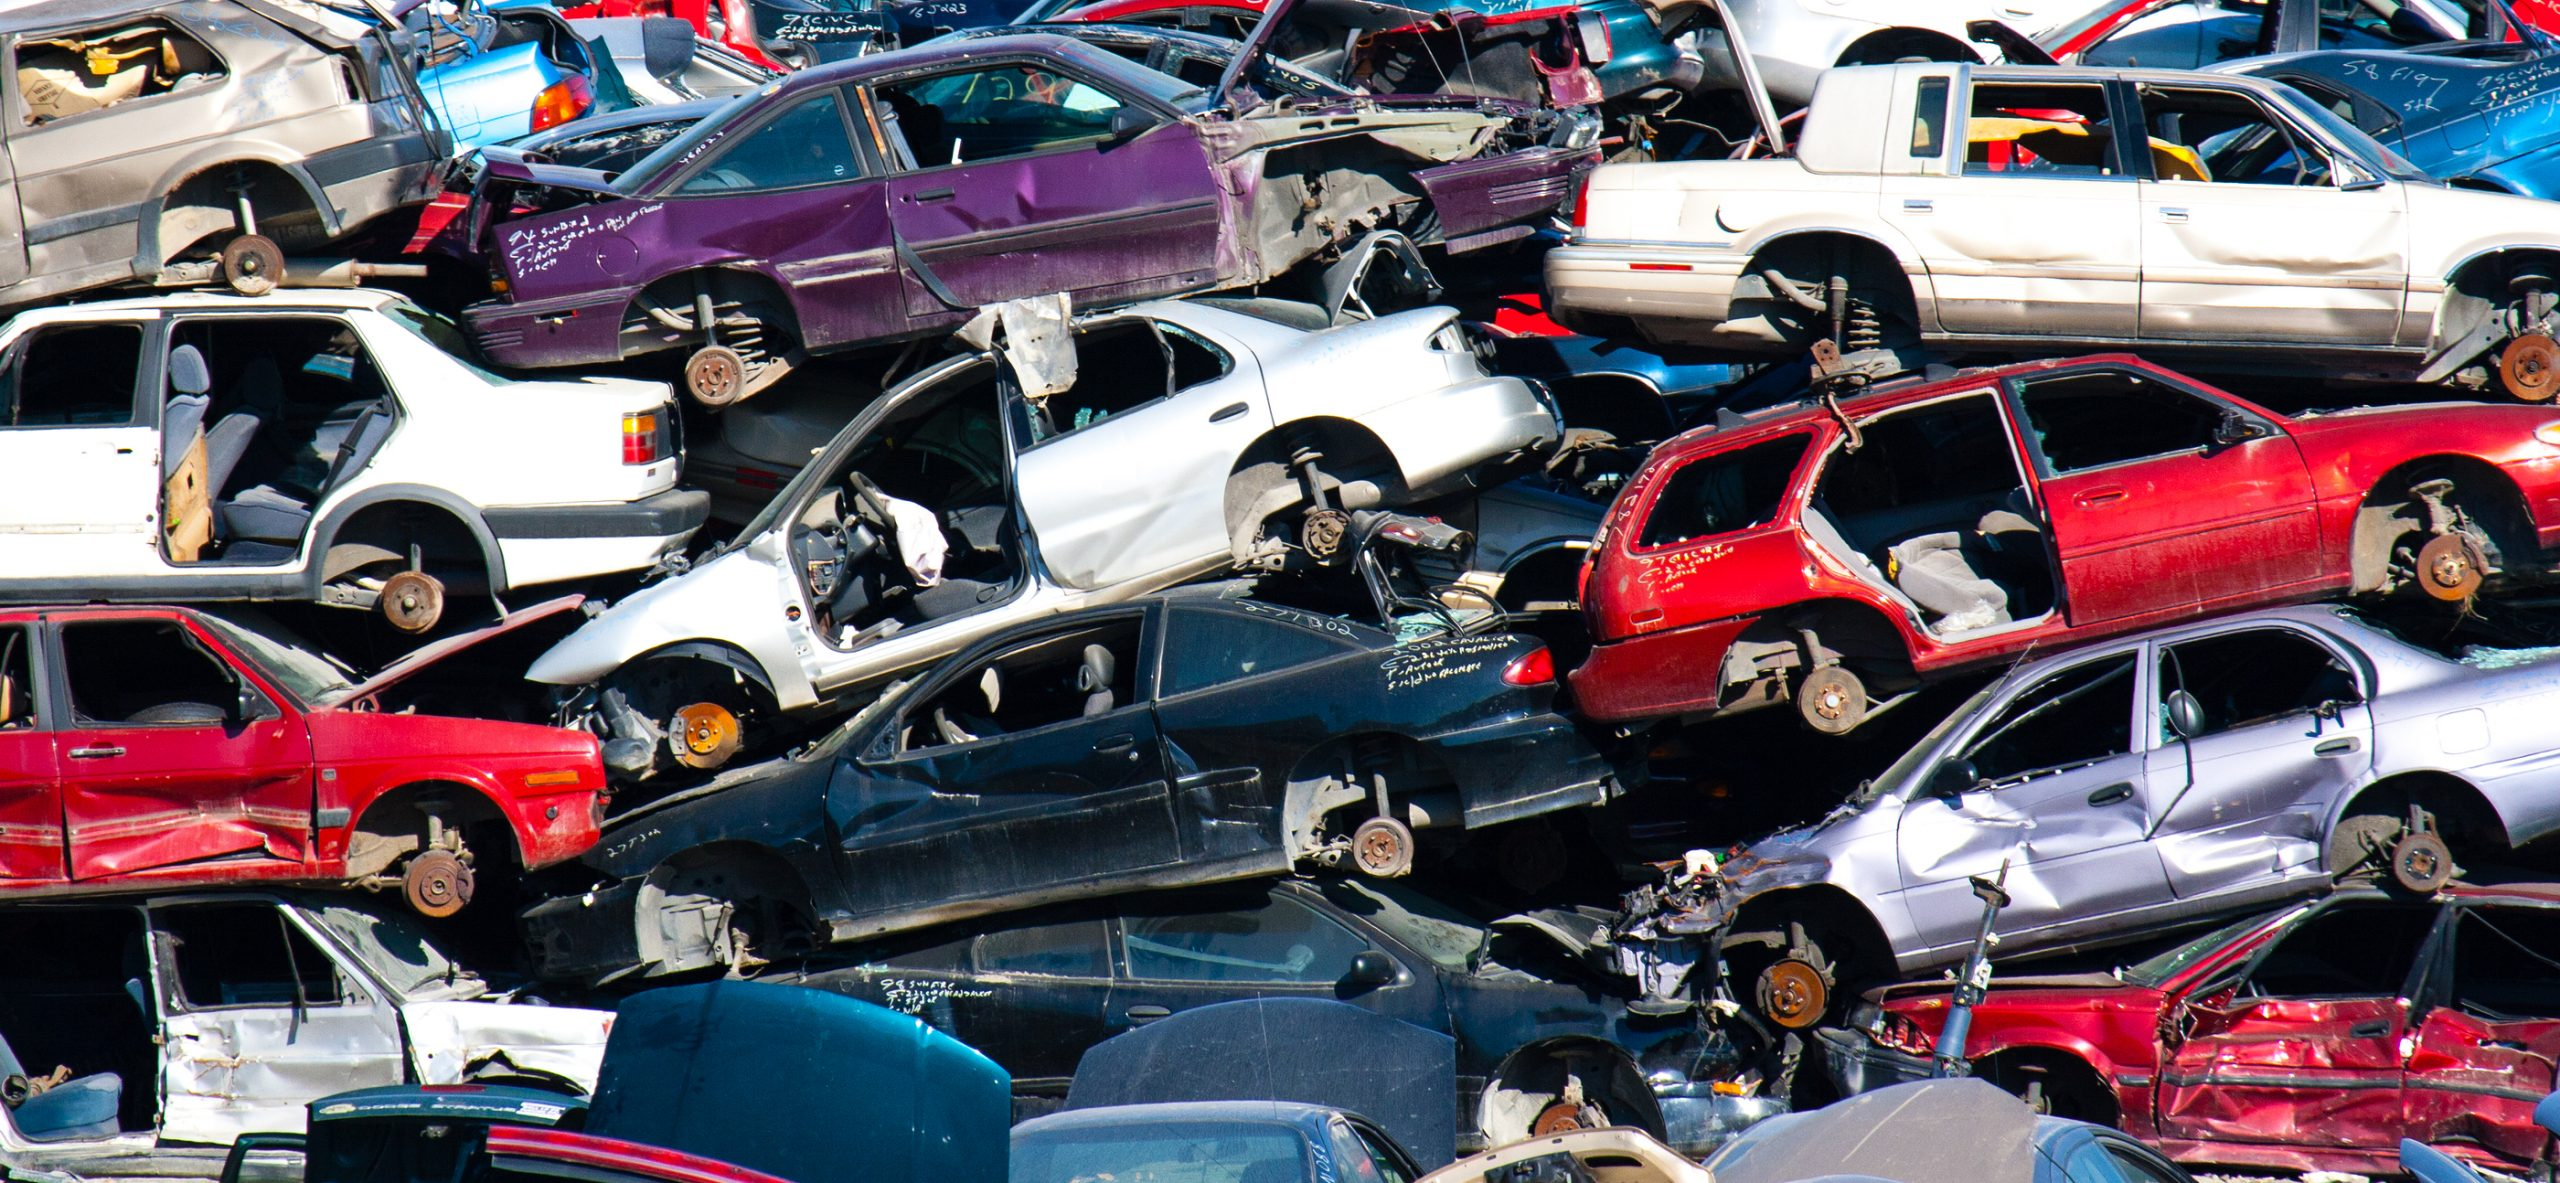 Sell a Car for Scrap: Learn How to Sell an Old Car for Scrap